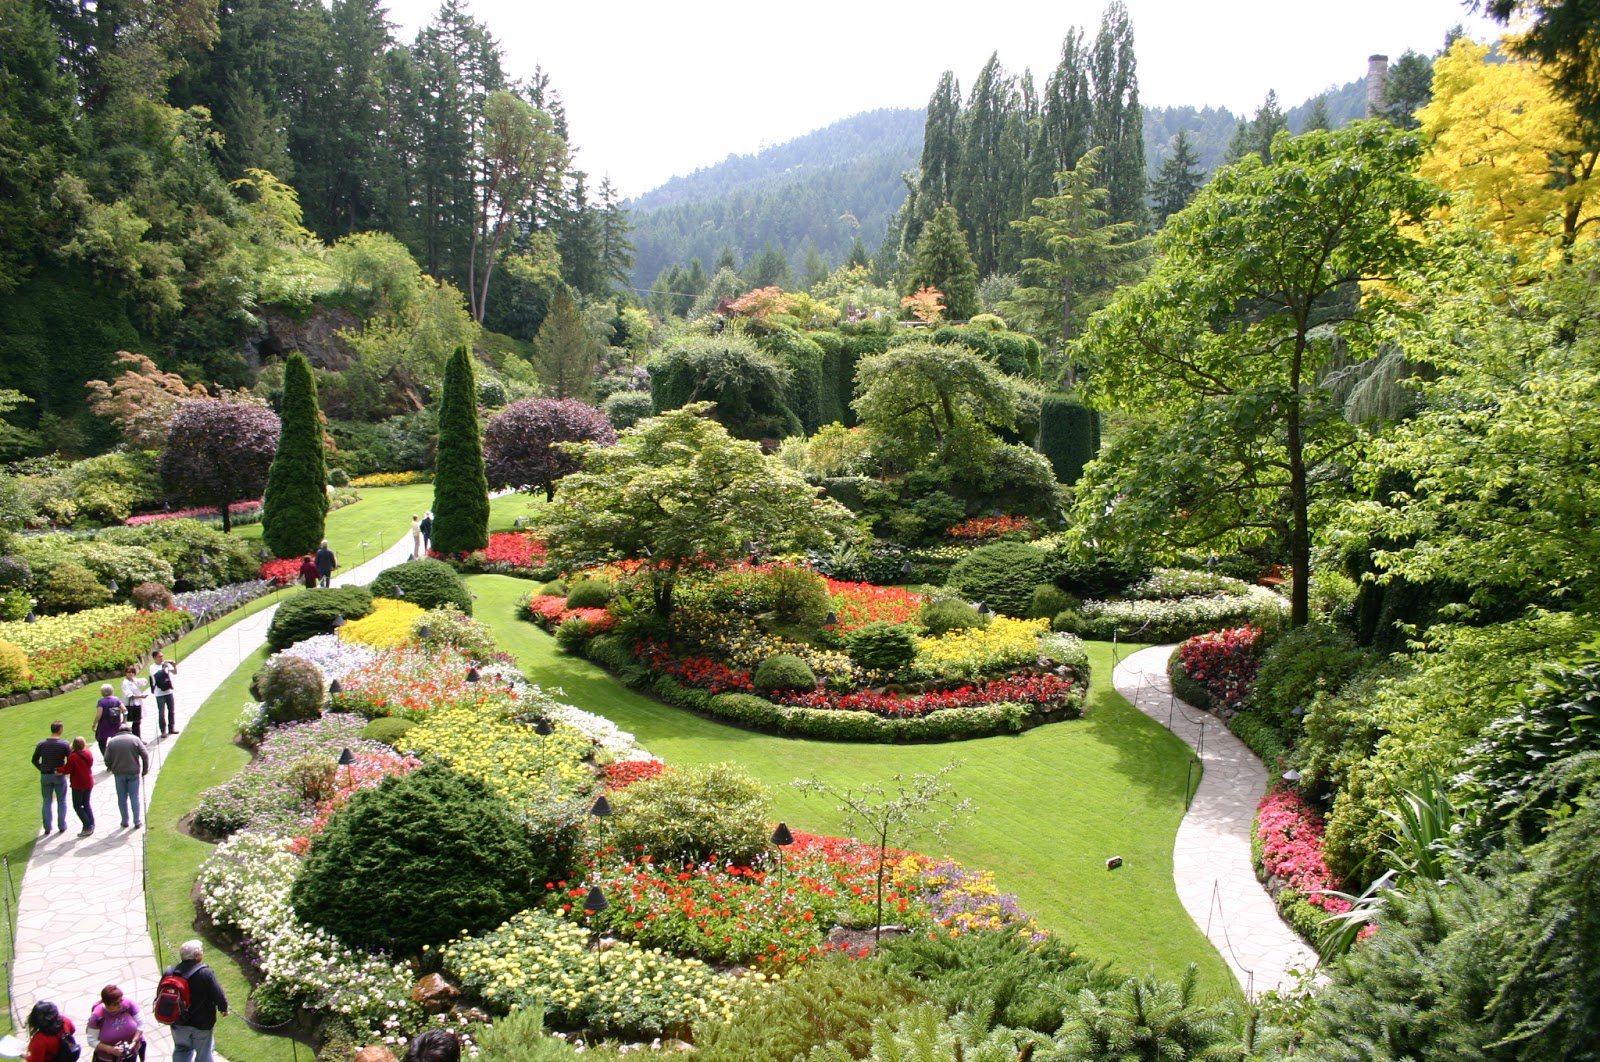 Green Espirit Celebrate Spring Time With The Butchart Gardens Photos Near Victoria British